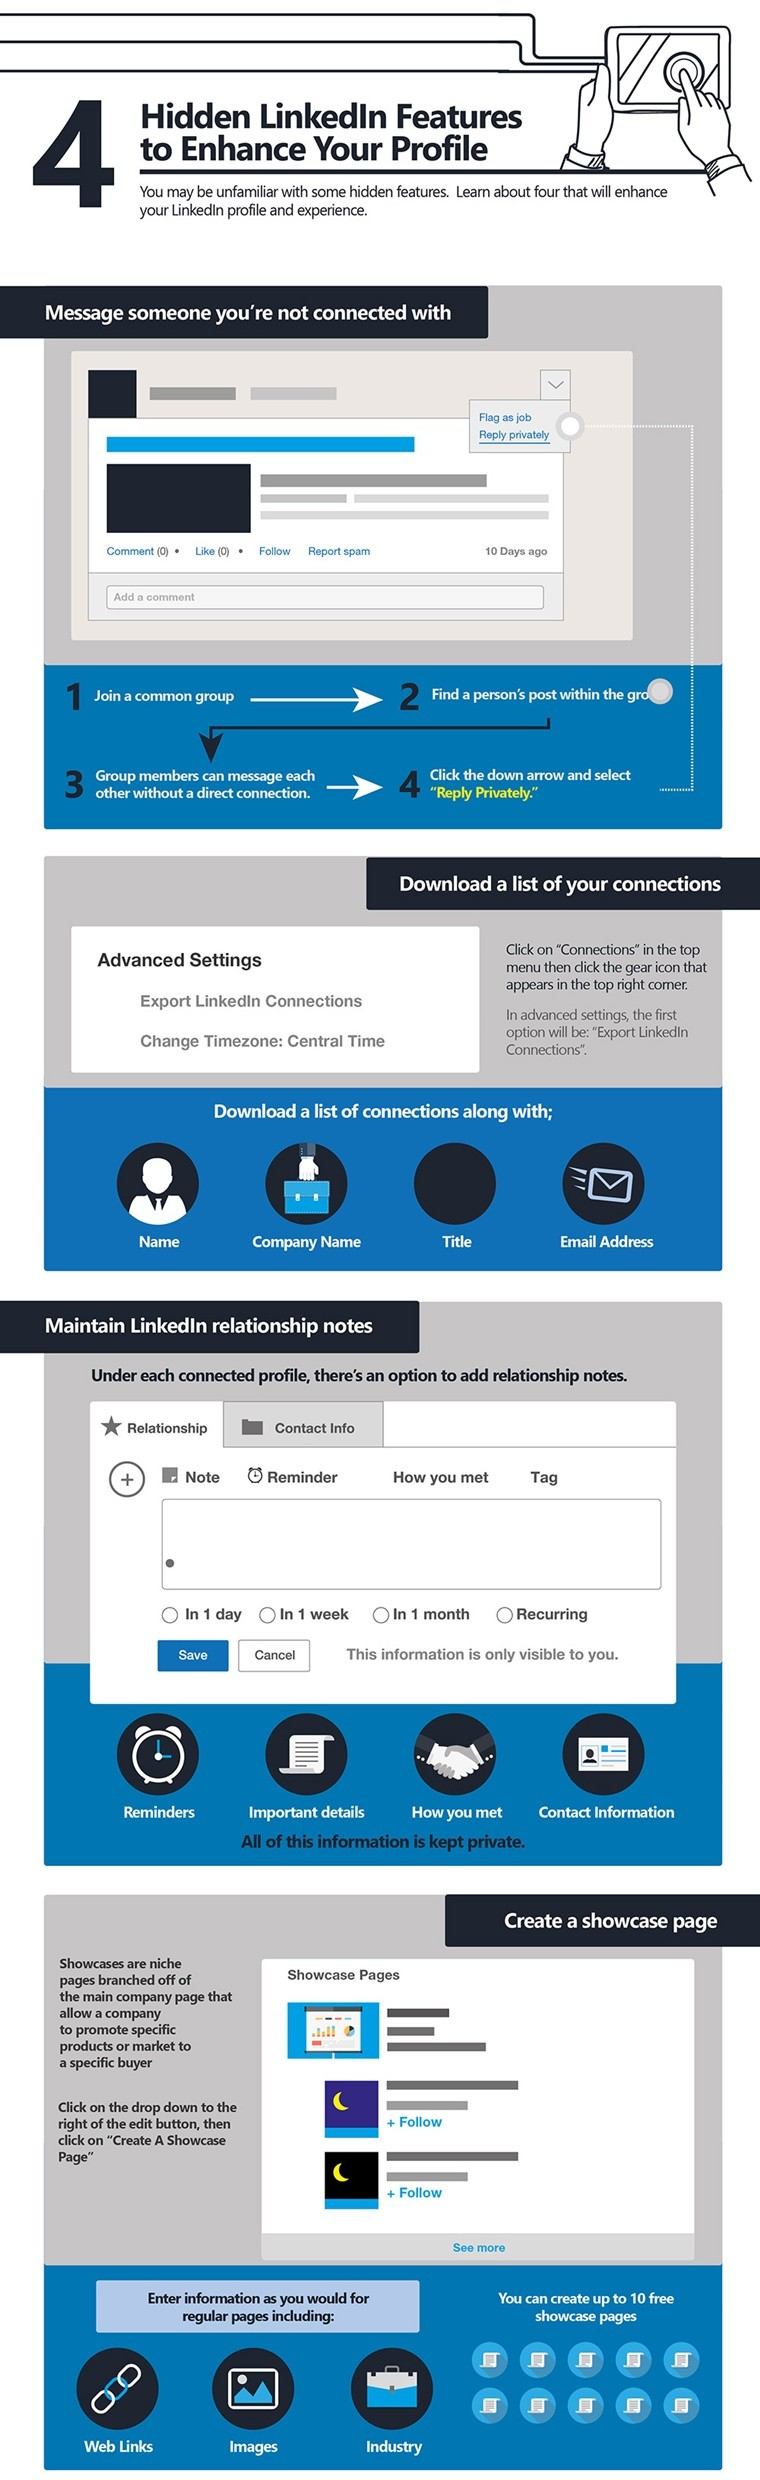 Ultimate LinkedIn Profile Cheat Sheet [Infographic] | SEJ